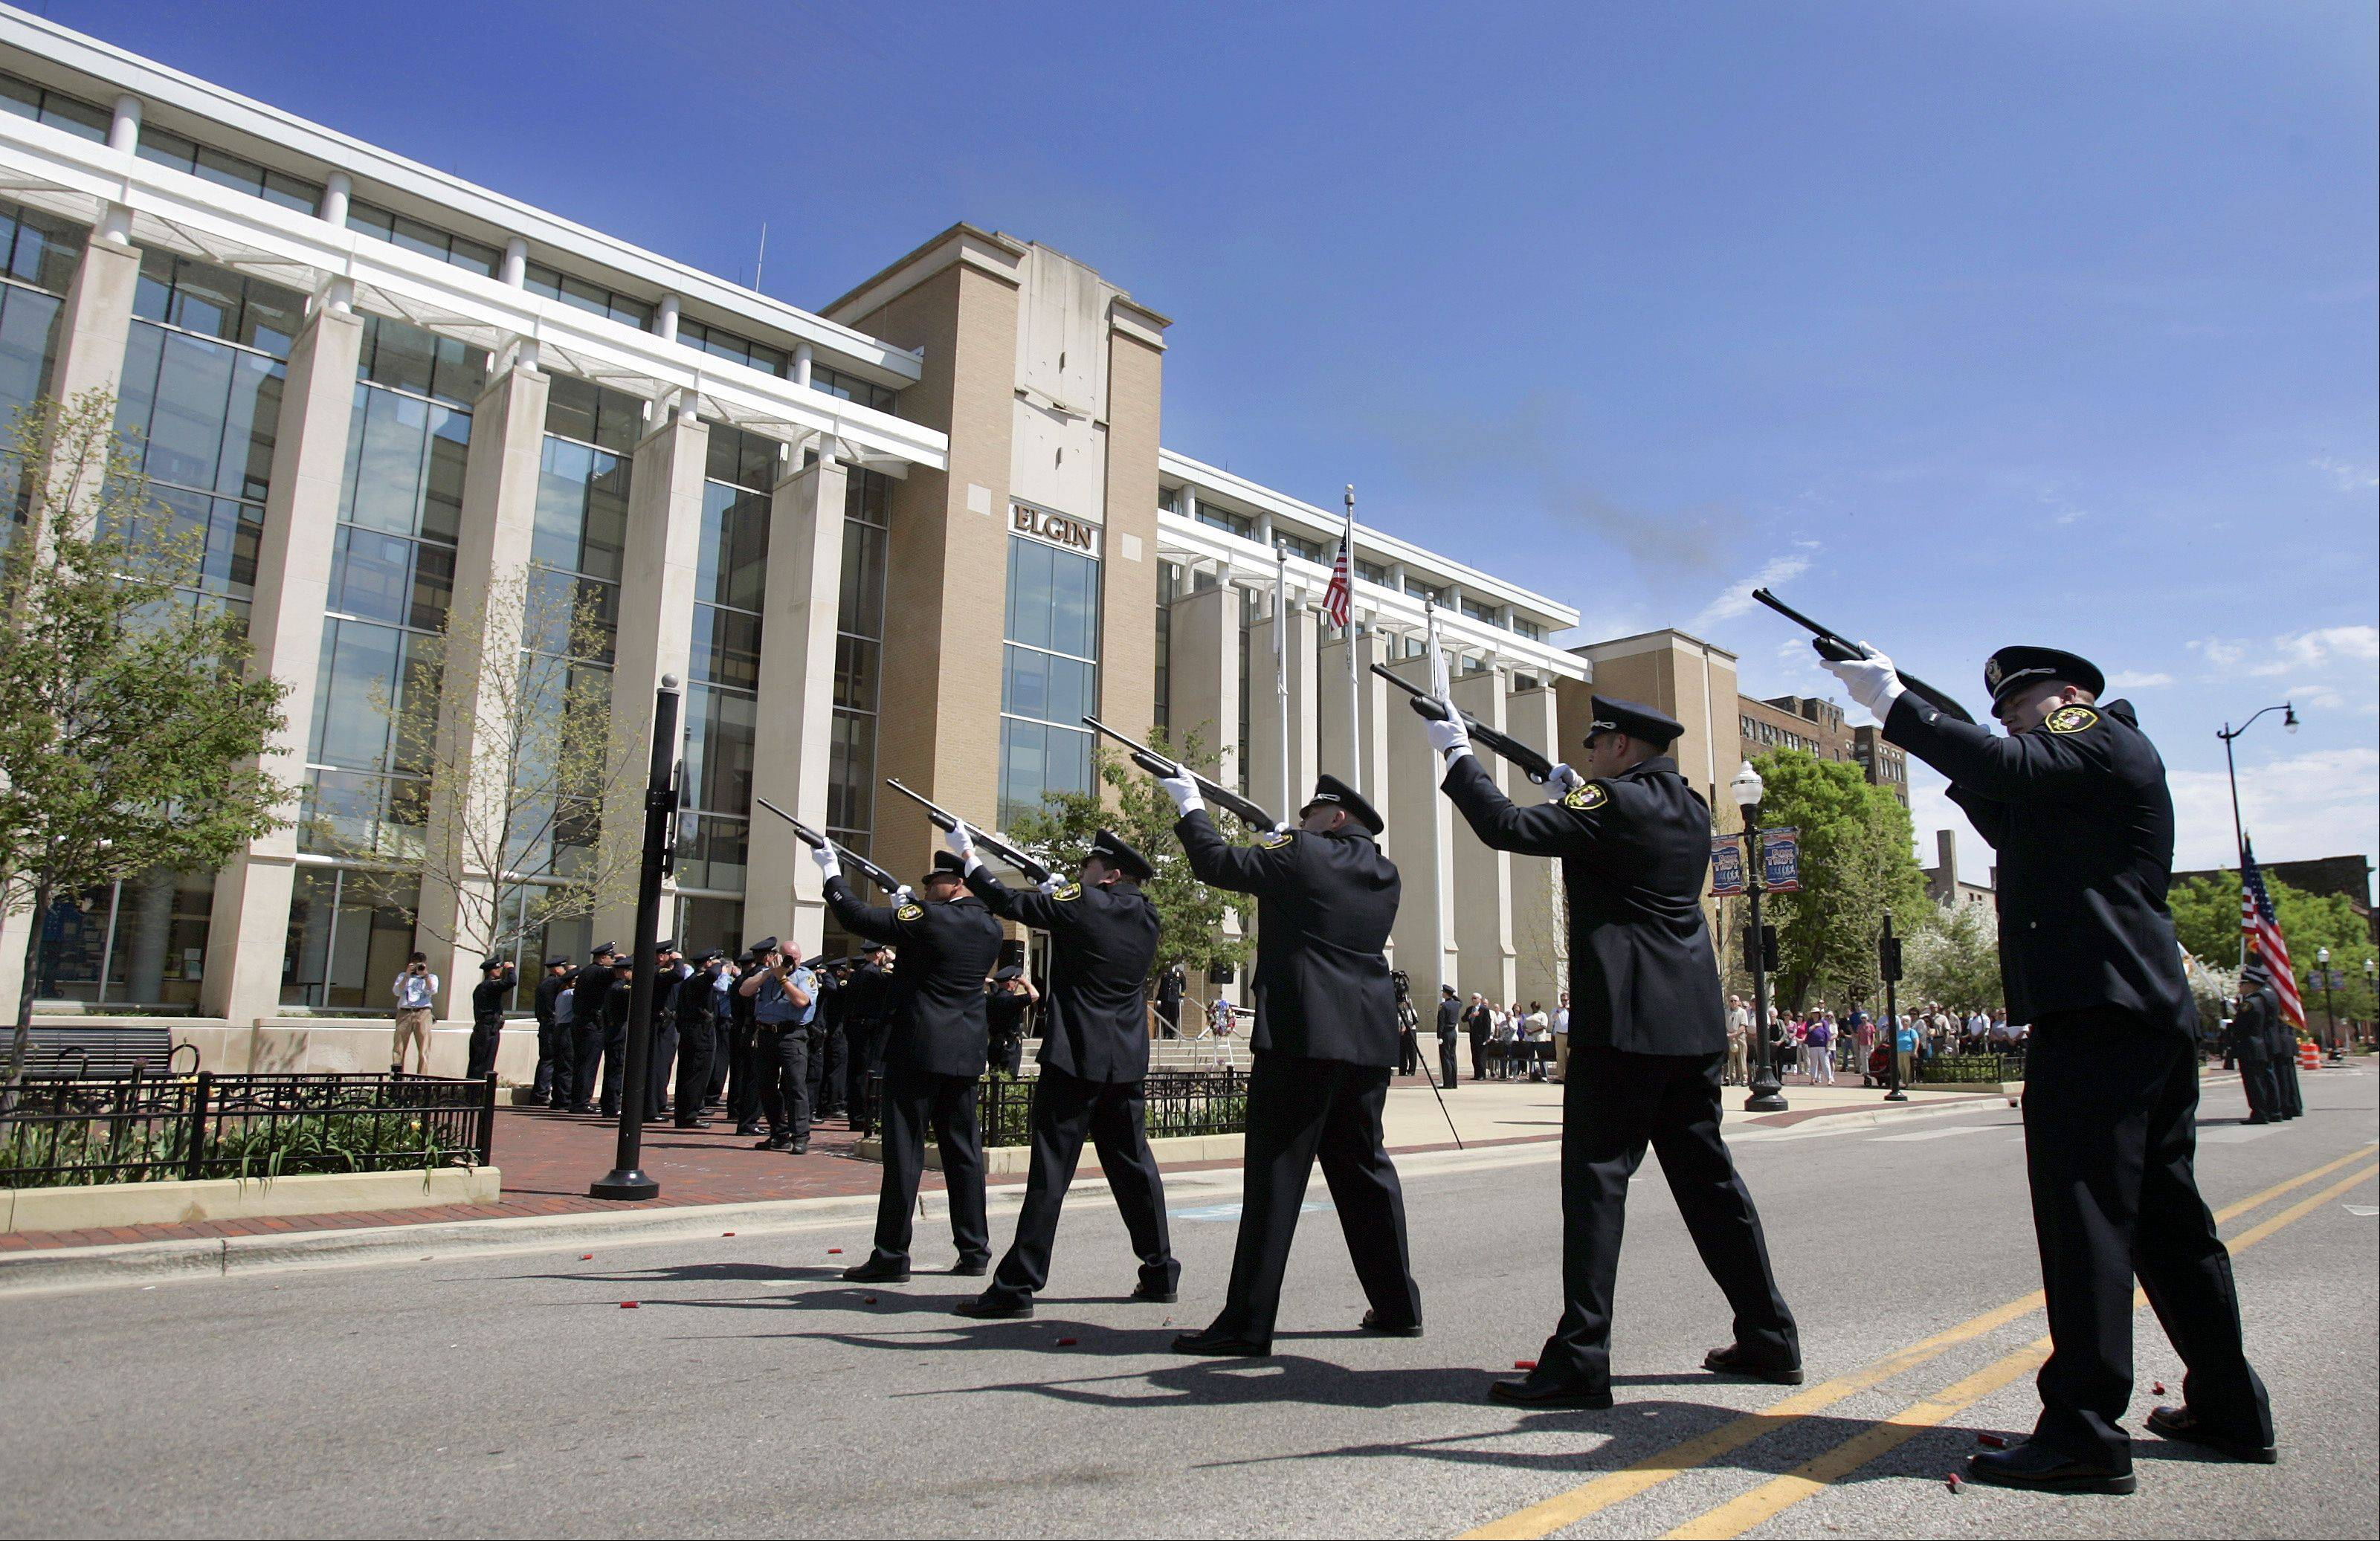 The firing detail fires off three volleys as taps is played from the parking deck during the 2013 Elgin Police Department Memorial Service Wednesday.